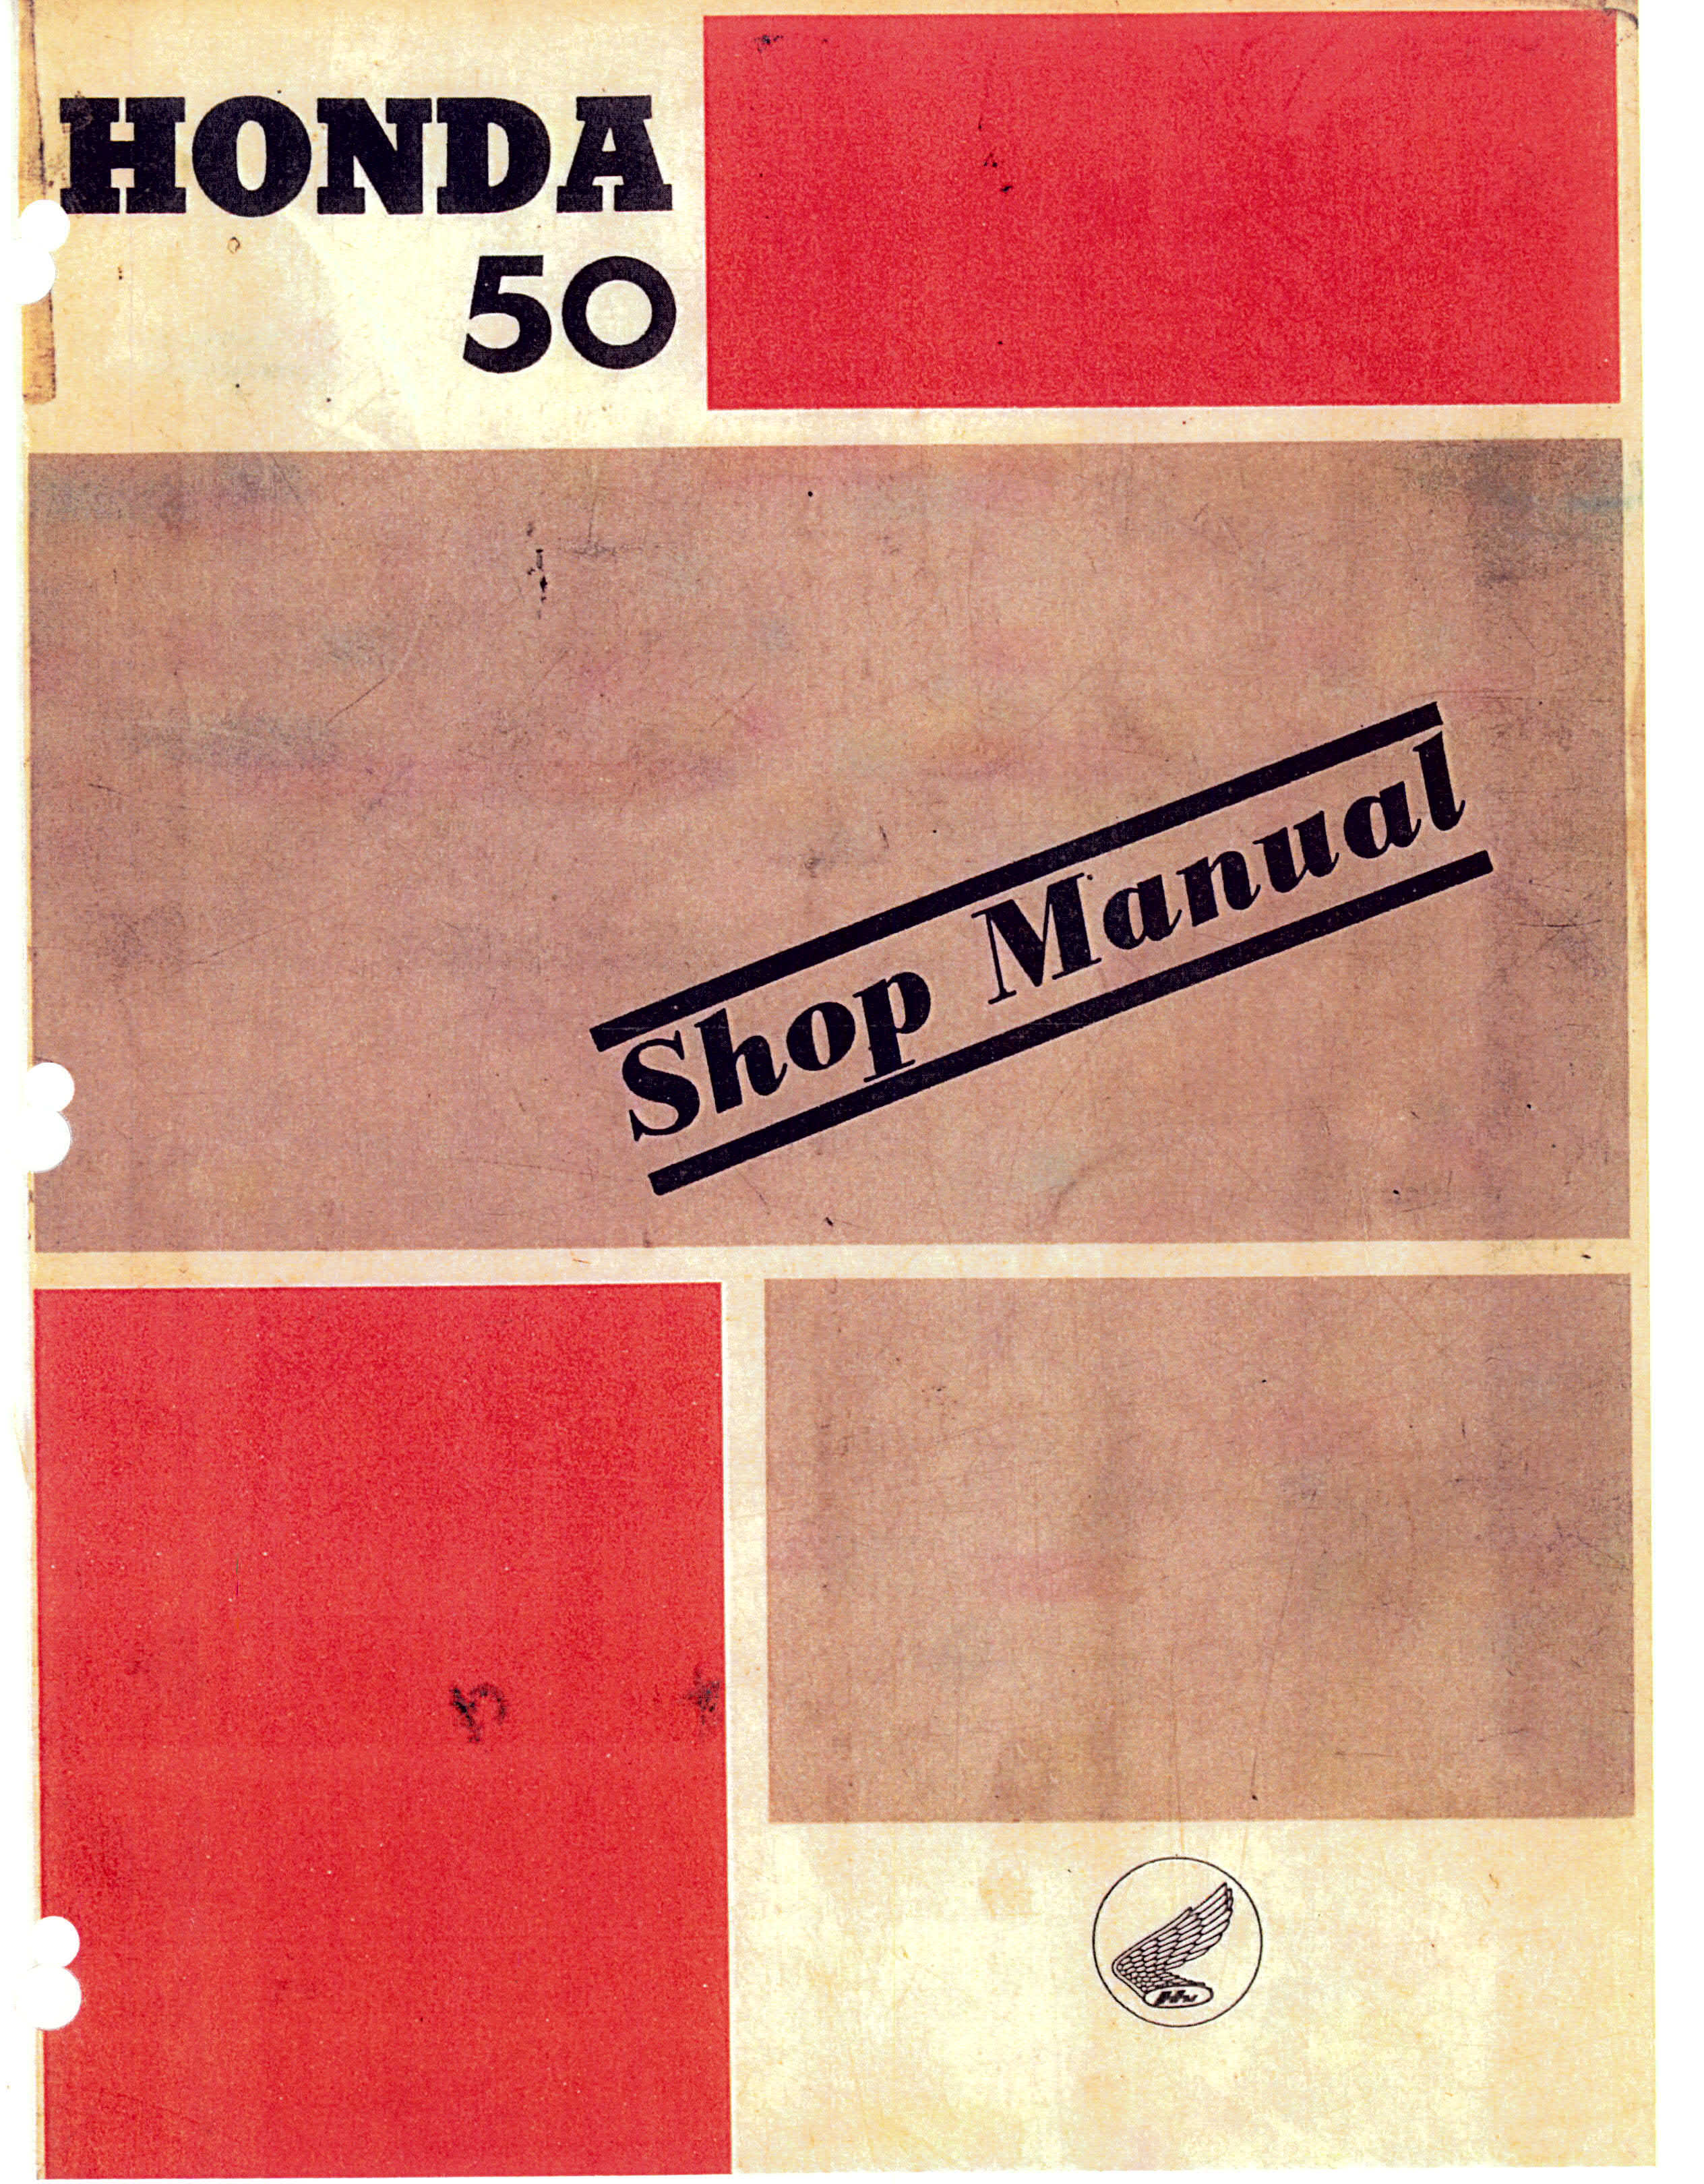 Workshop manual for Honda C100 (1961)